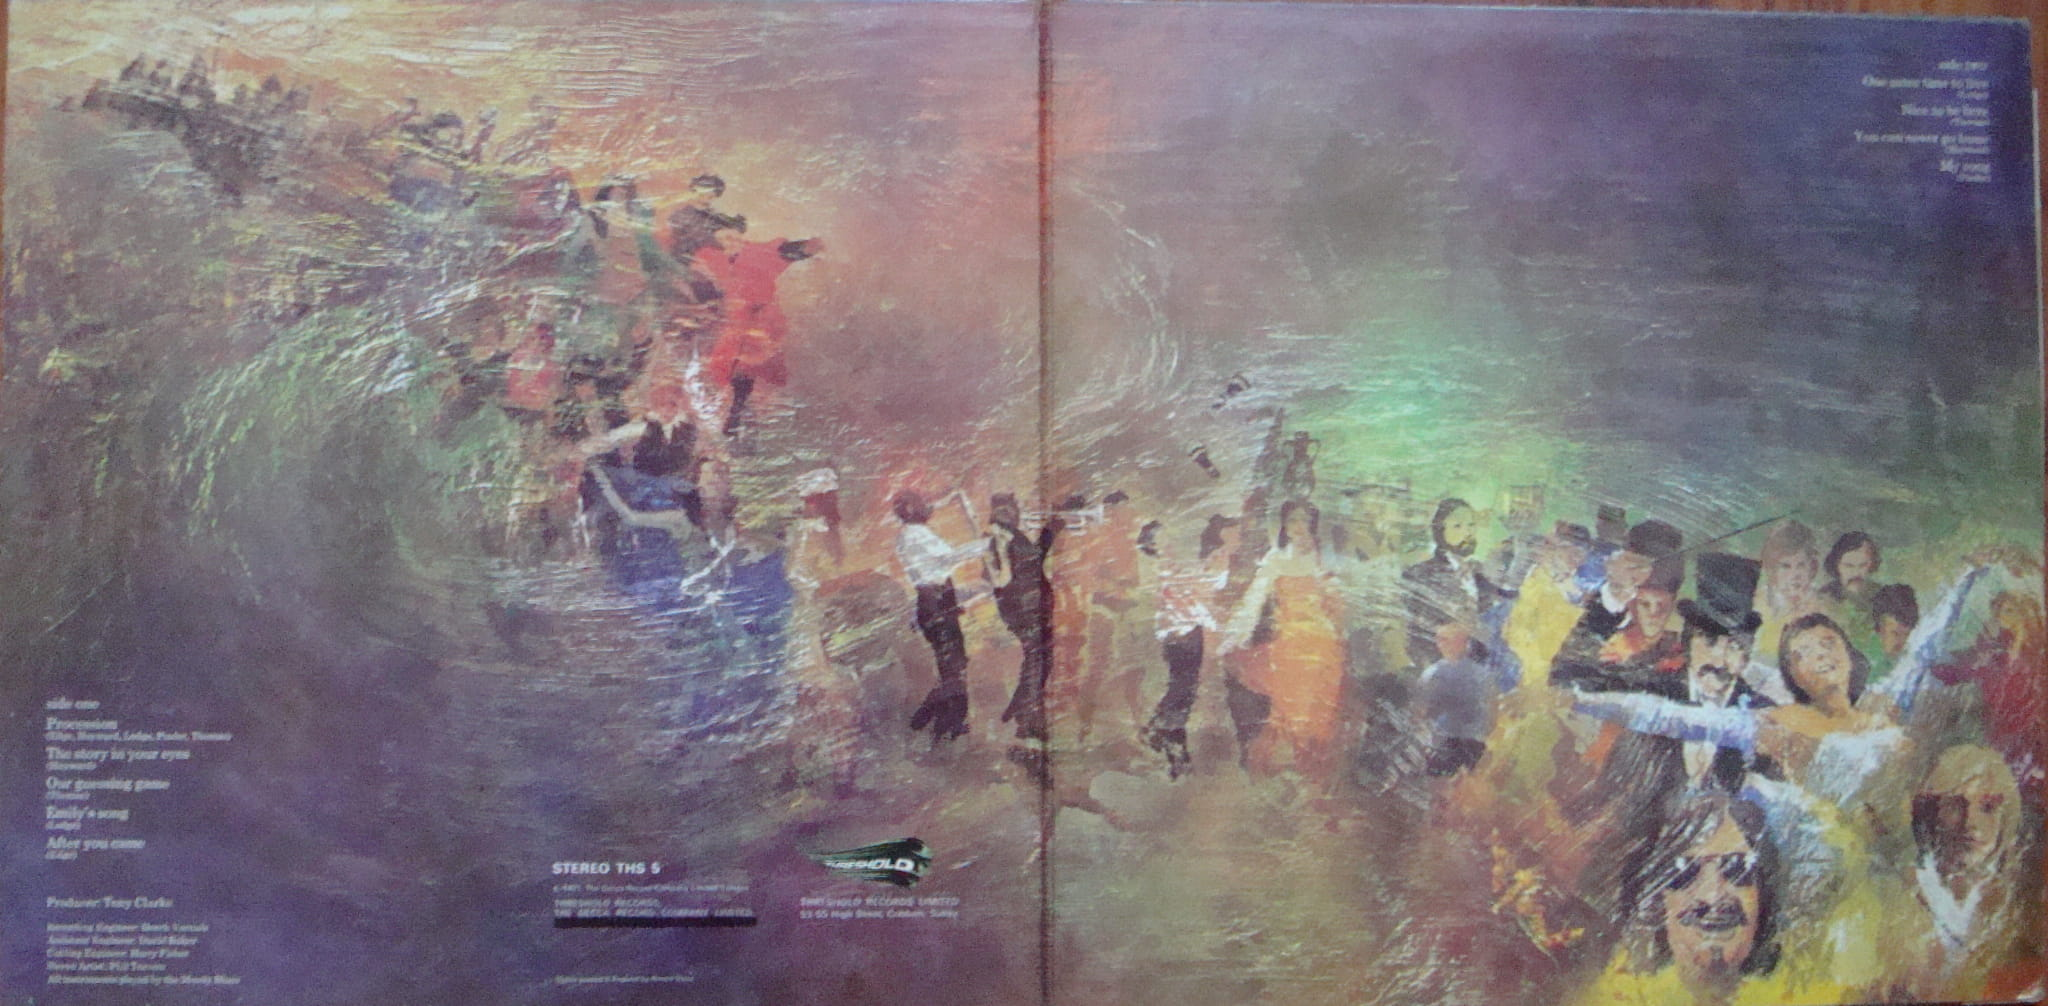 The Moody Blues – Every Good Boy Deserves Favour THS 5 + Insert Rock